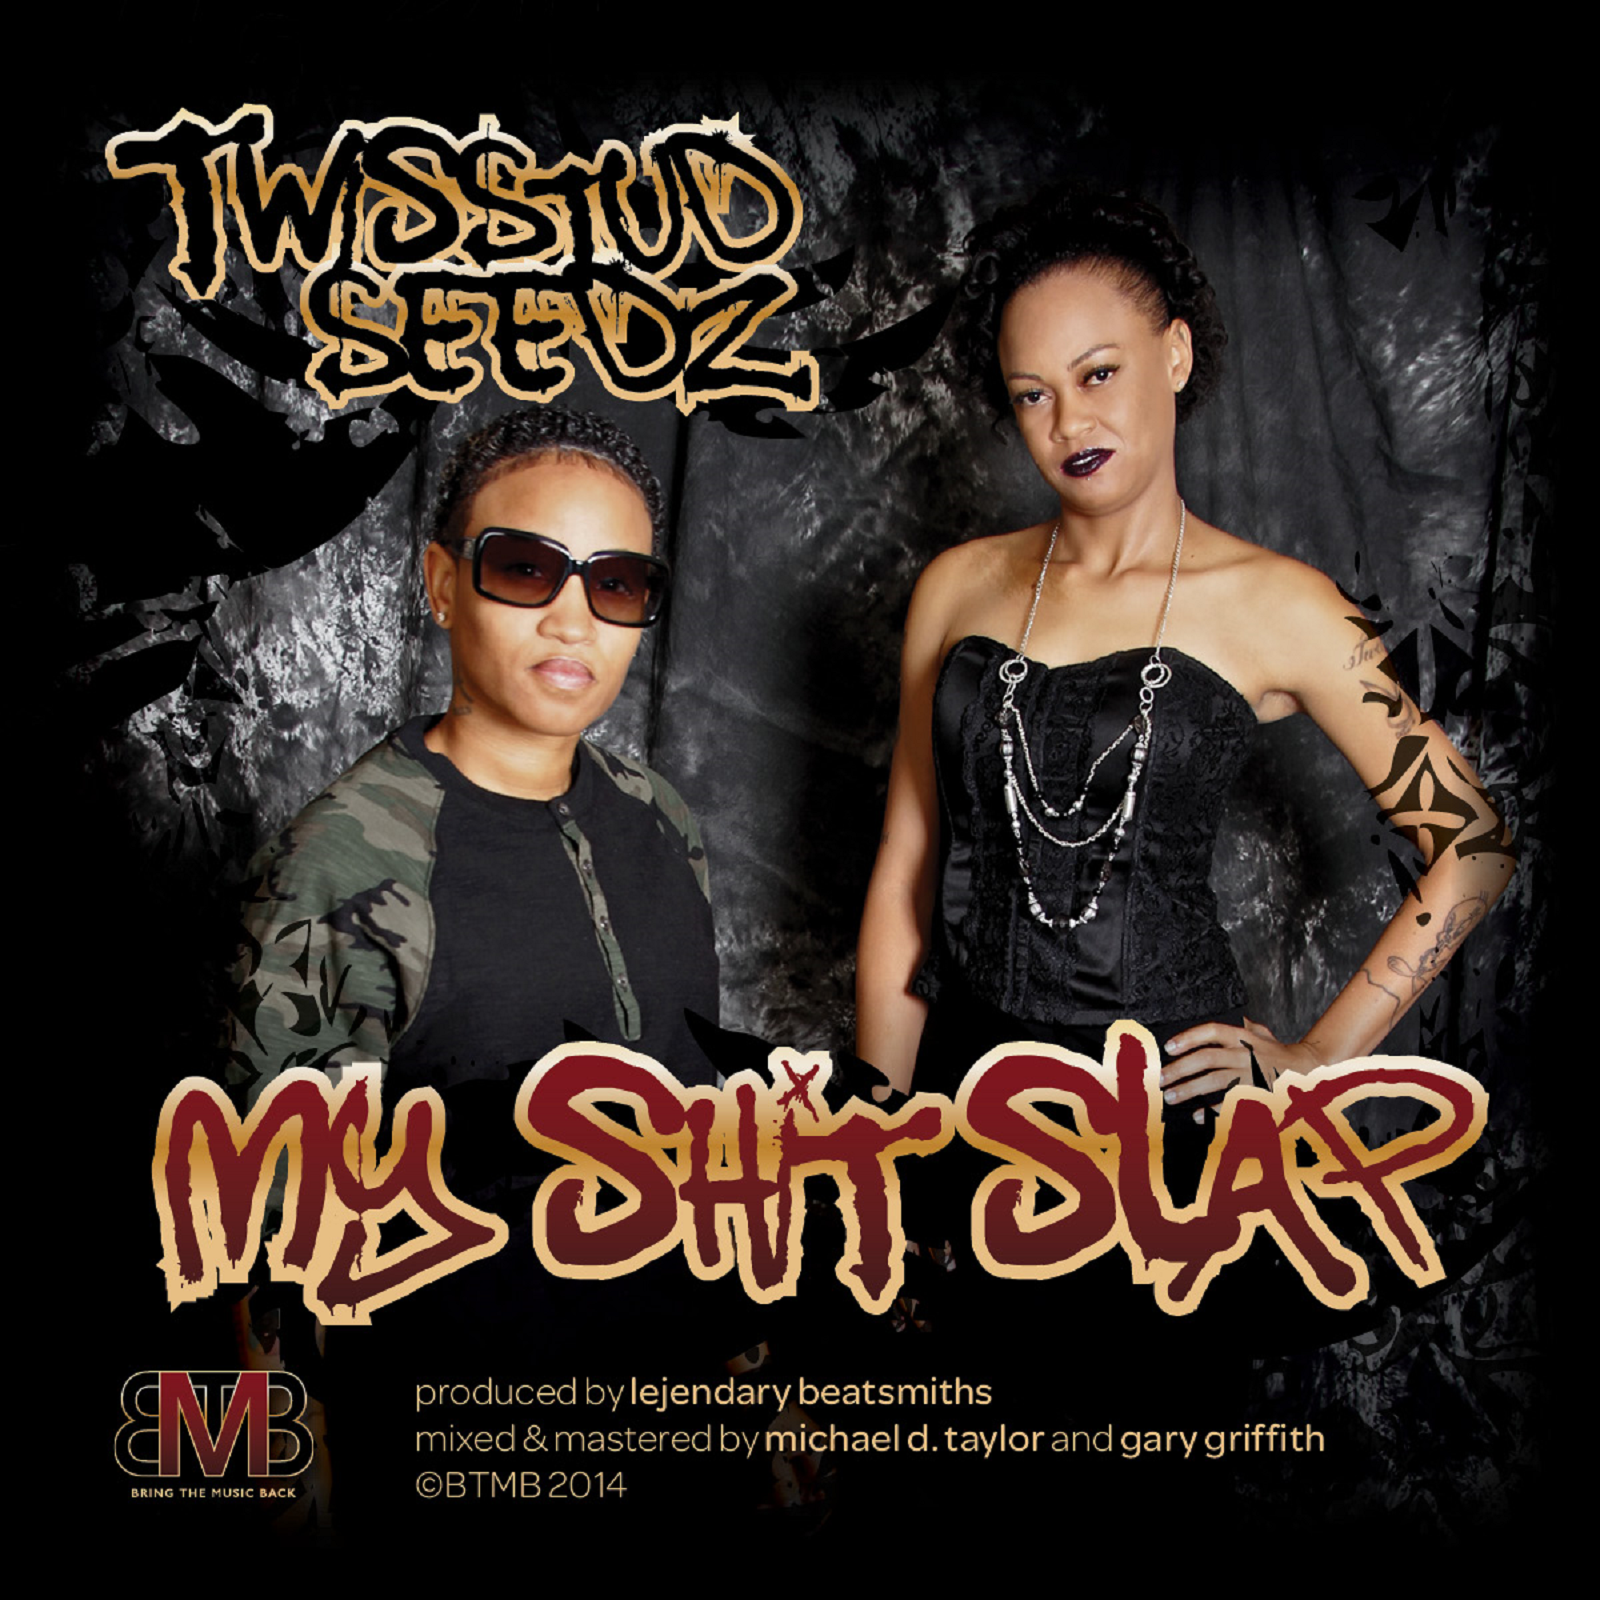 Seedz 1600 CD cover Slap 4.png